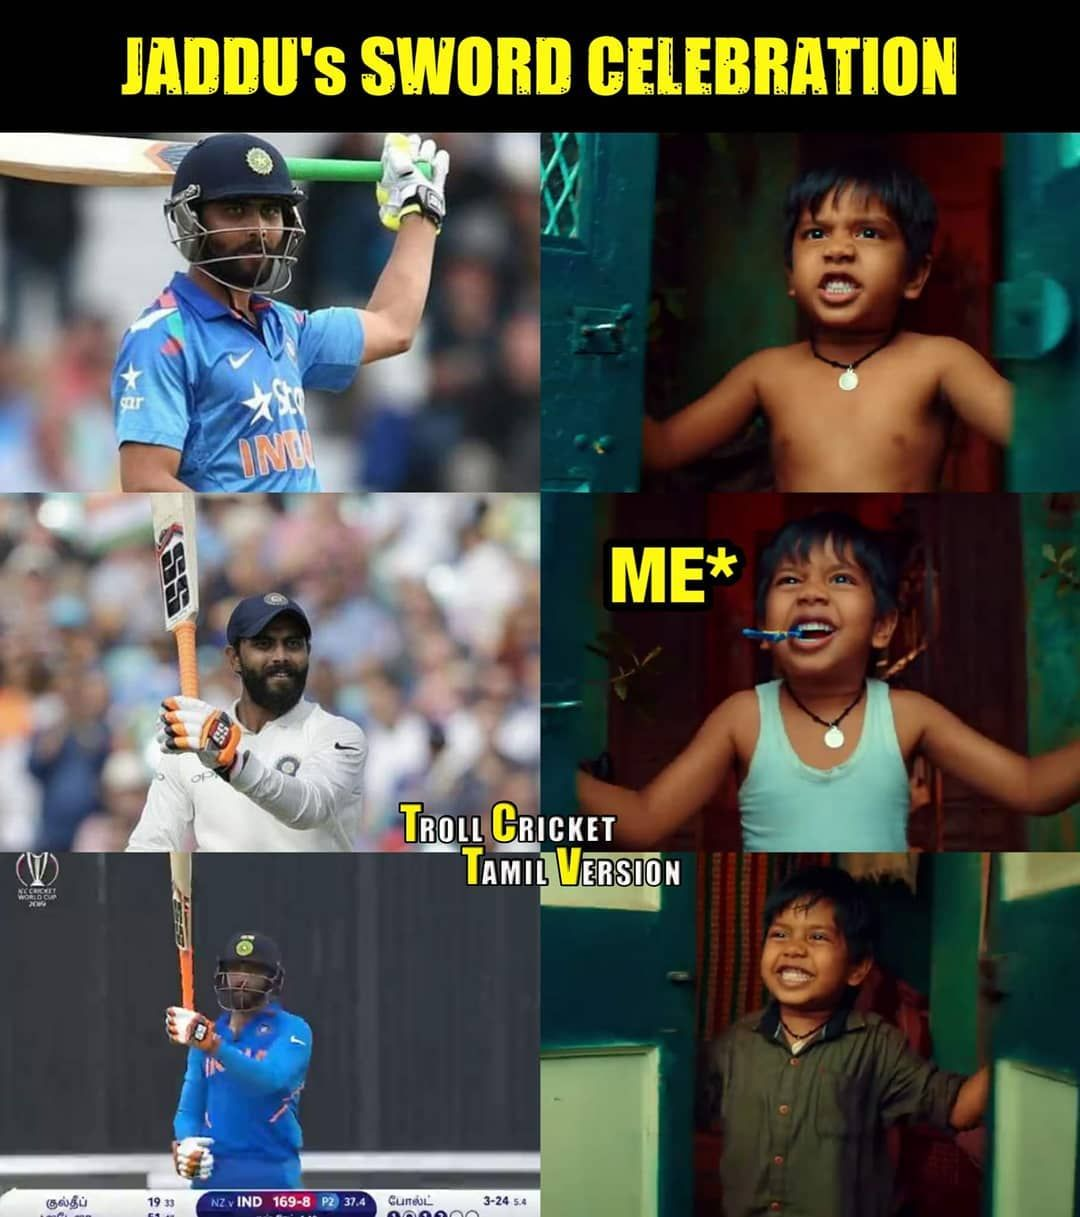 61 Likes 0 Comments Ipl Teams Trolls Iplteams On Instagram Any Fans For That Celebration Roy India Cricket Team Cricket Sport Ms Dhoni Wallpapers